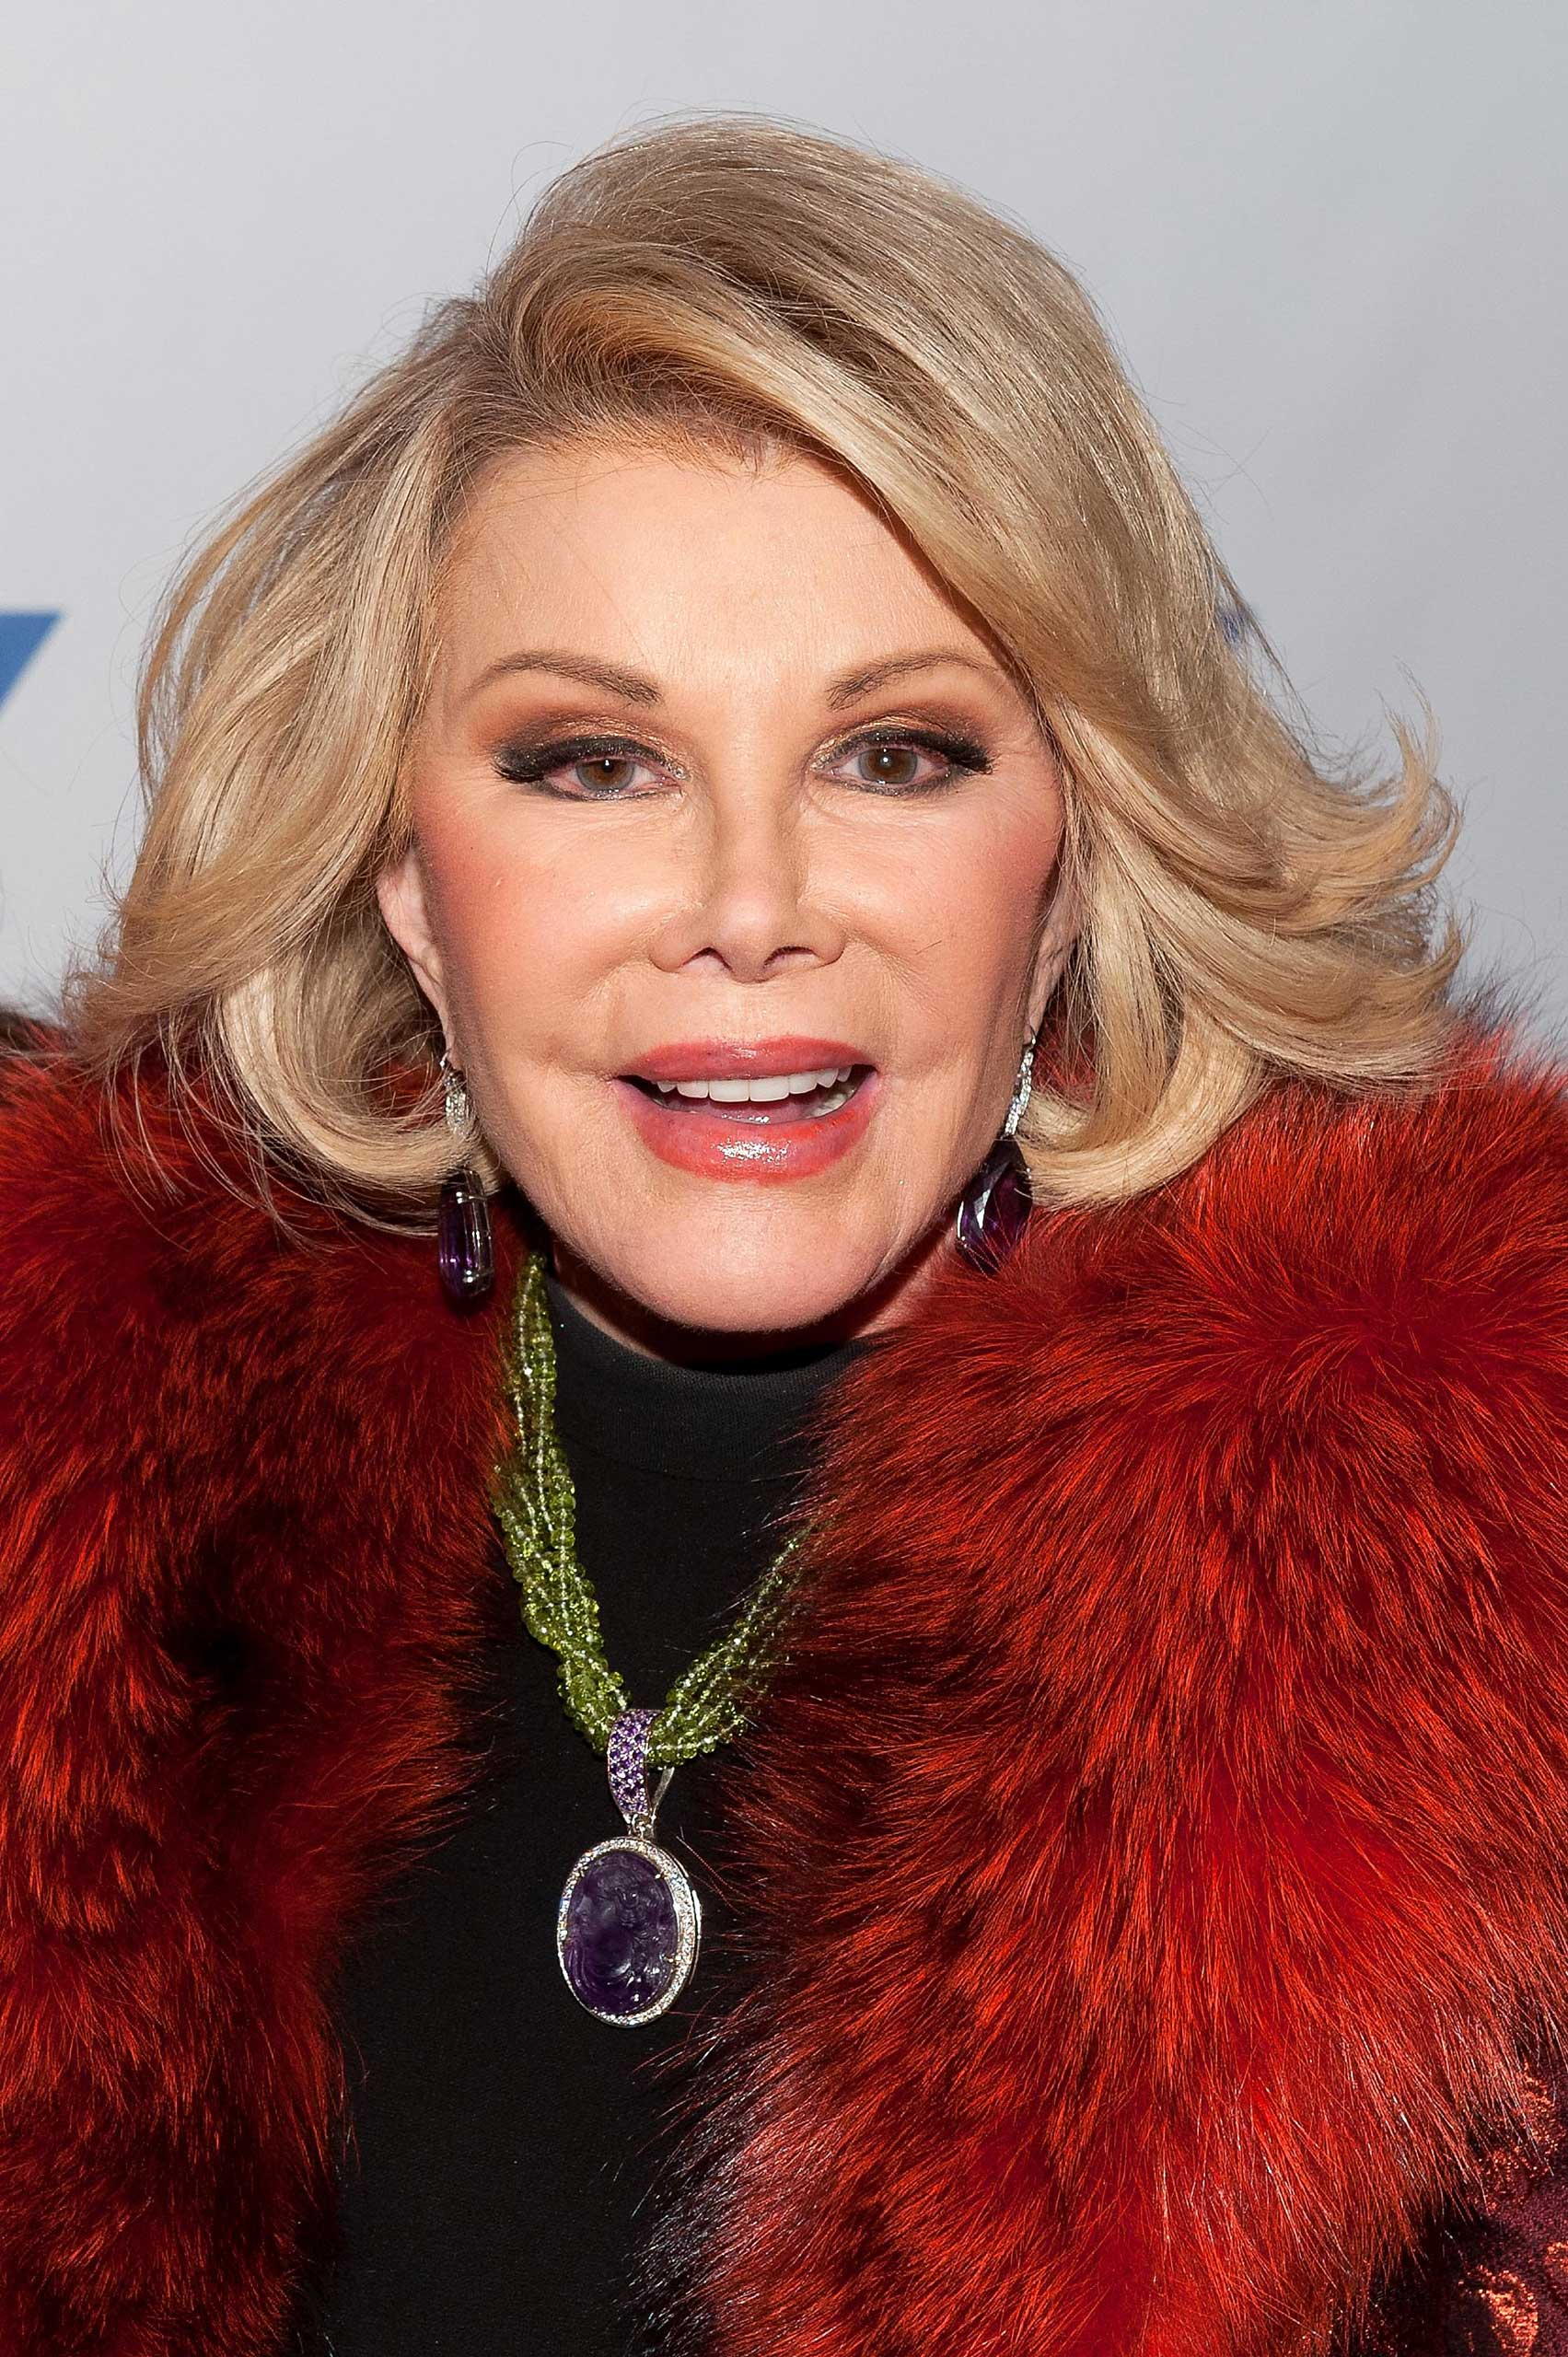 The late Joan Rivers in New York, Jan. 22, 2014.